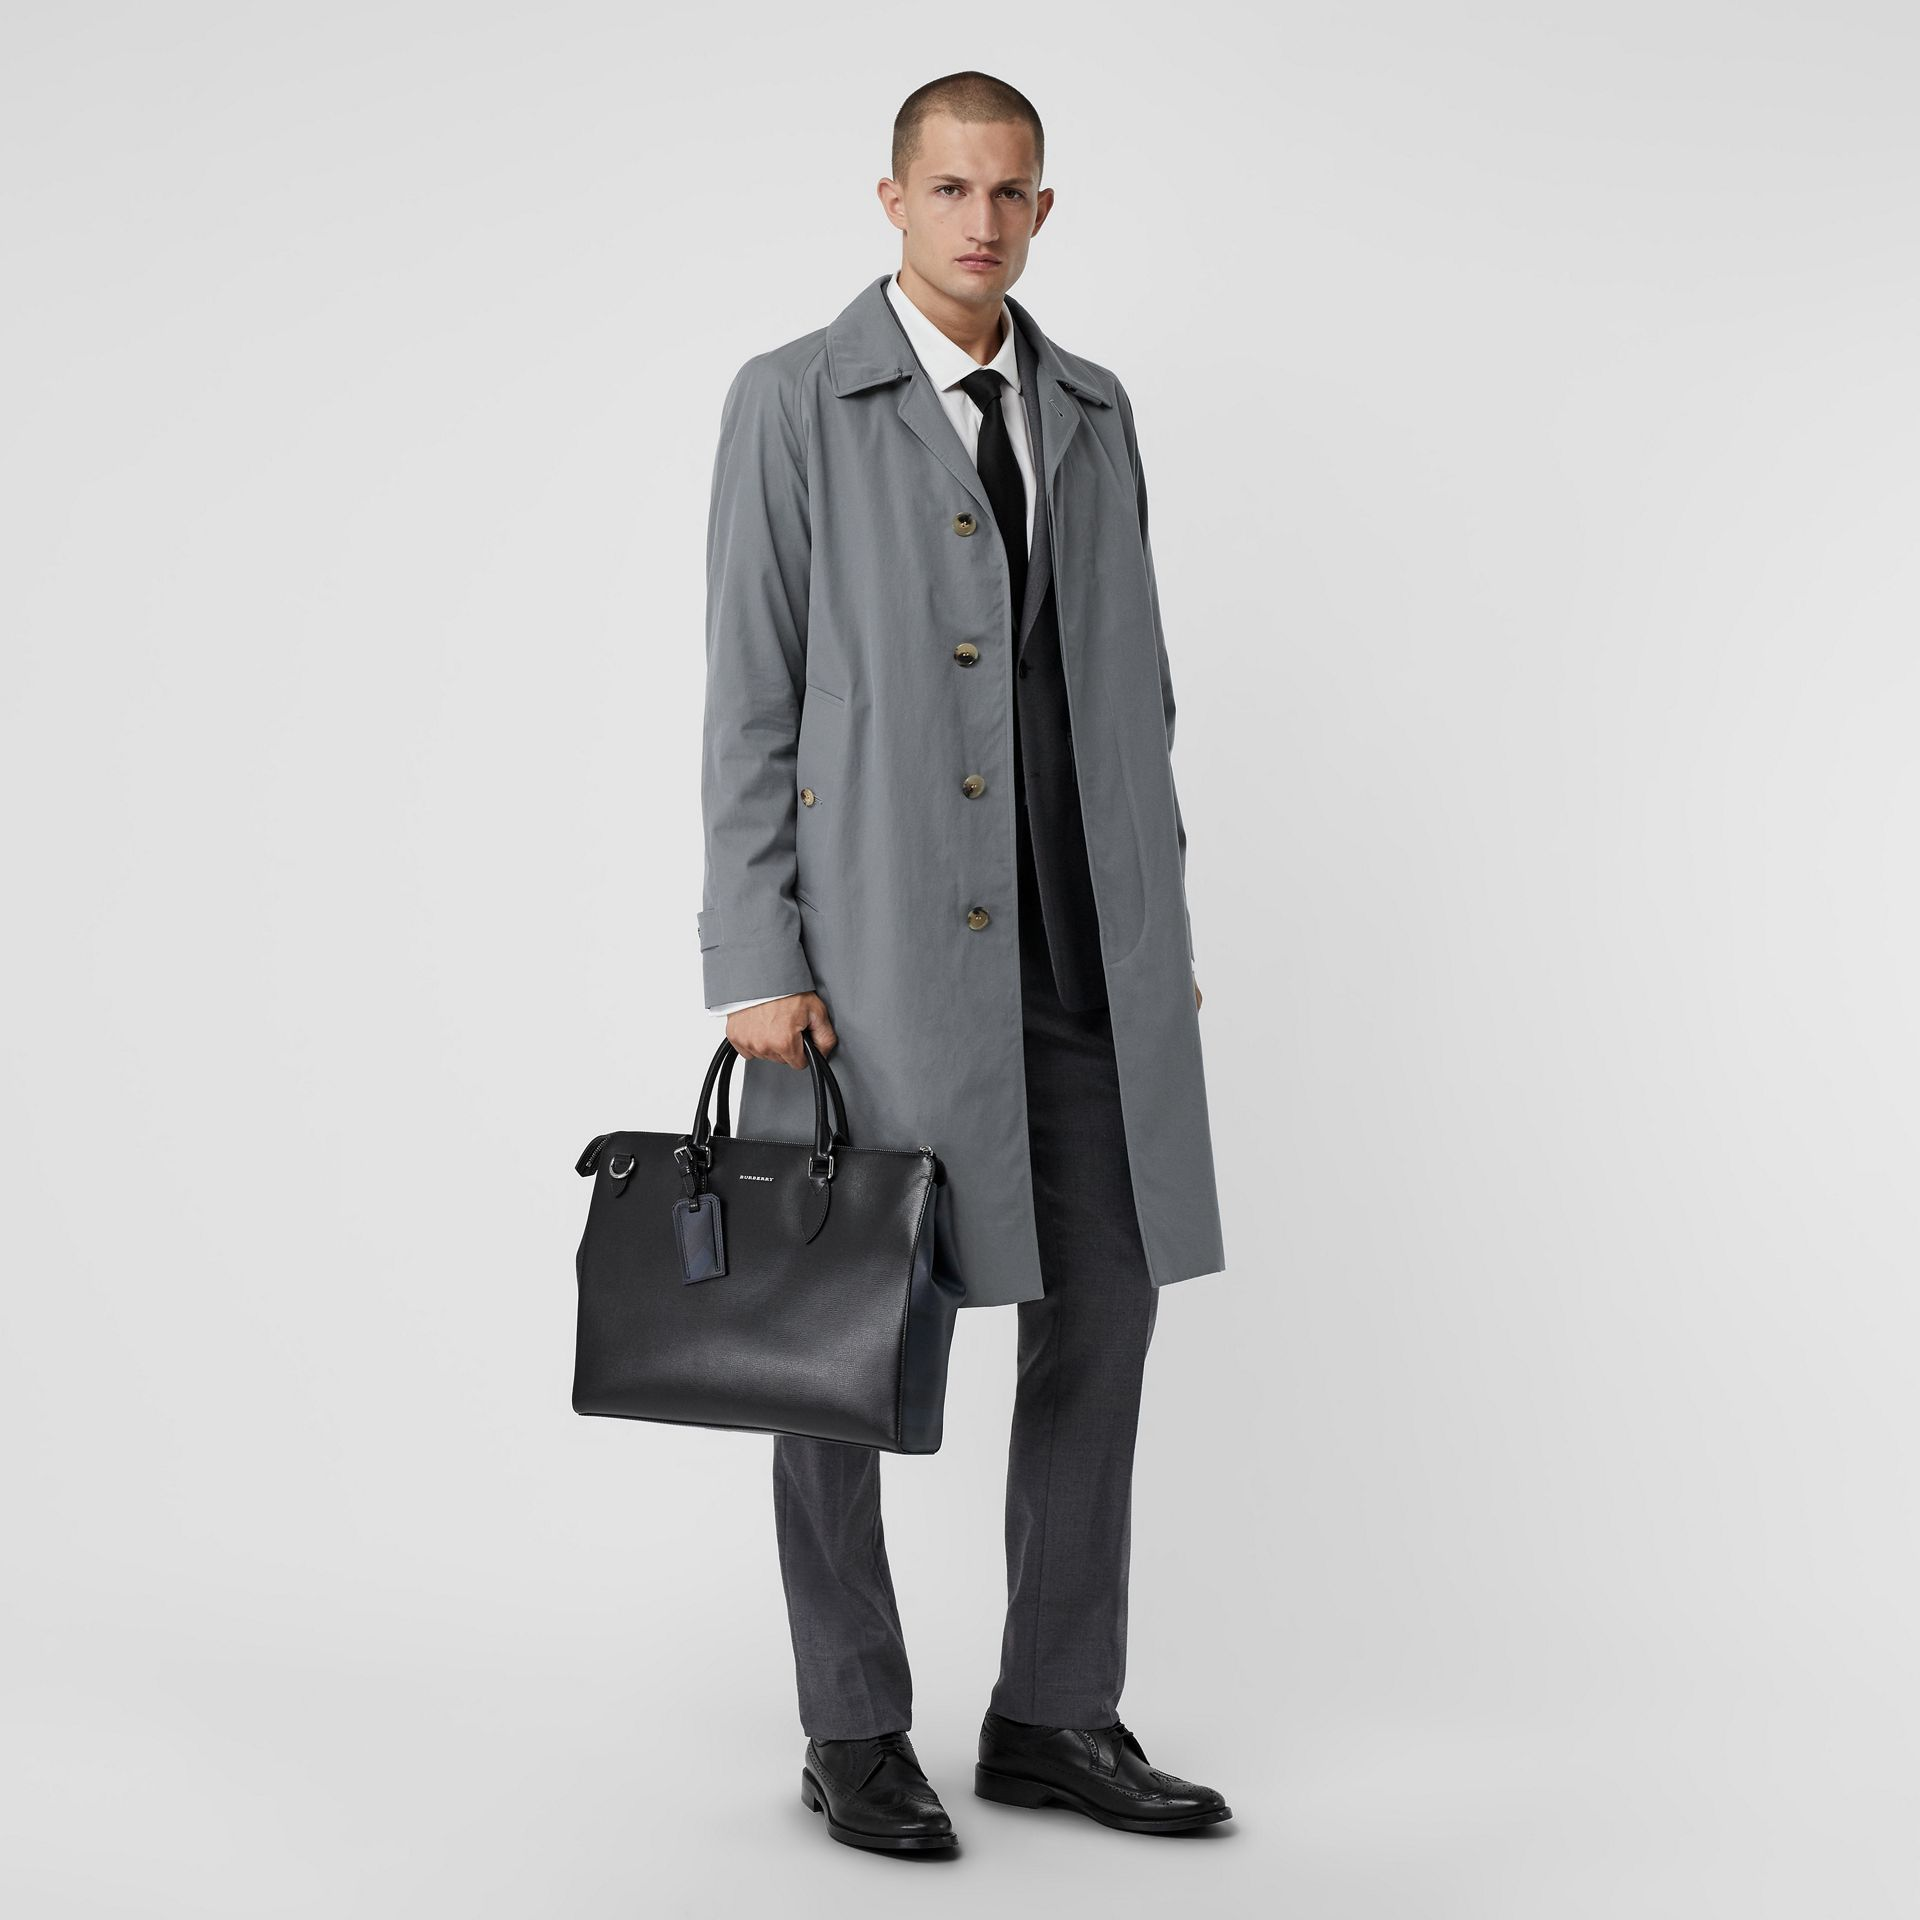 Large London Leather Briefcase in Black - Men | Burberry - gallery image 2